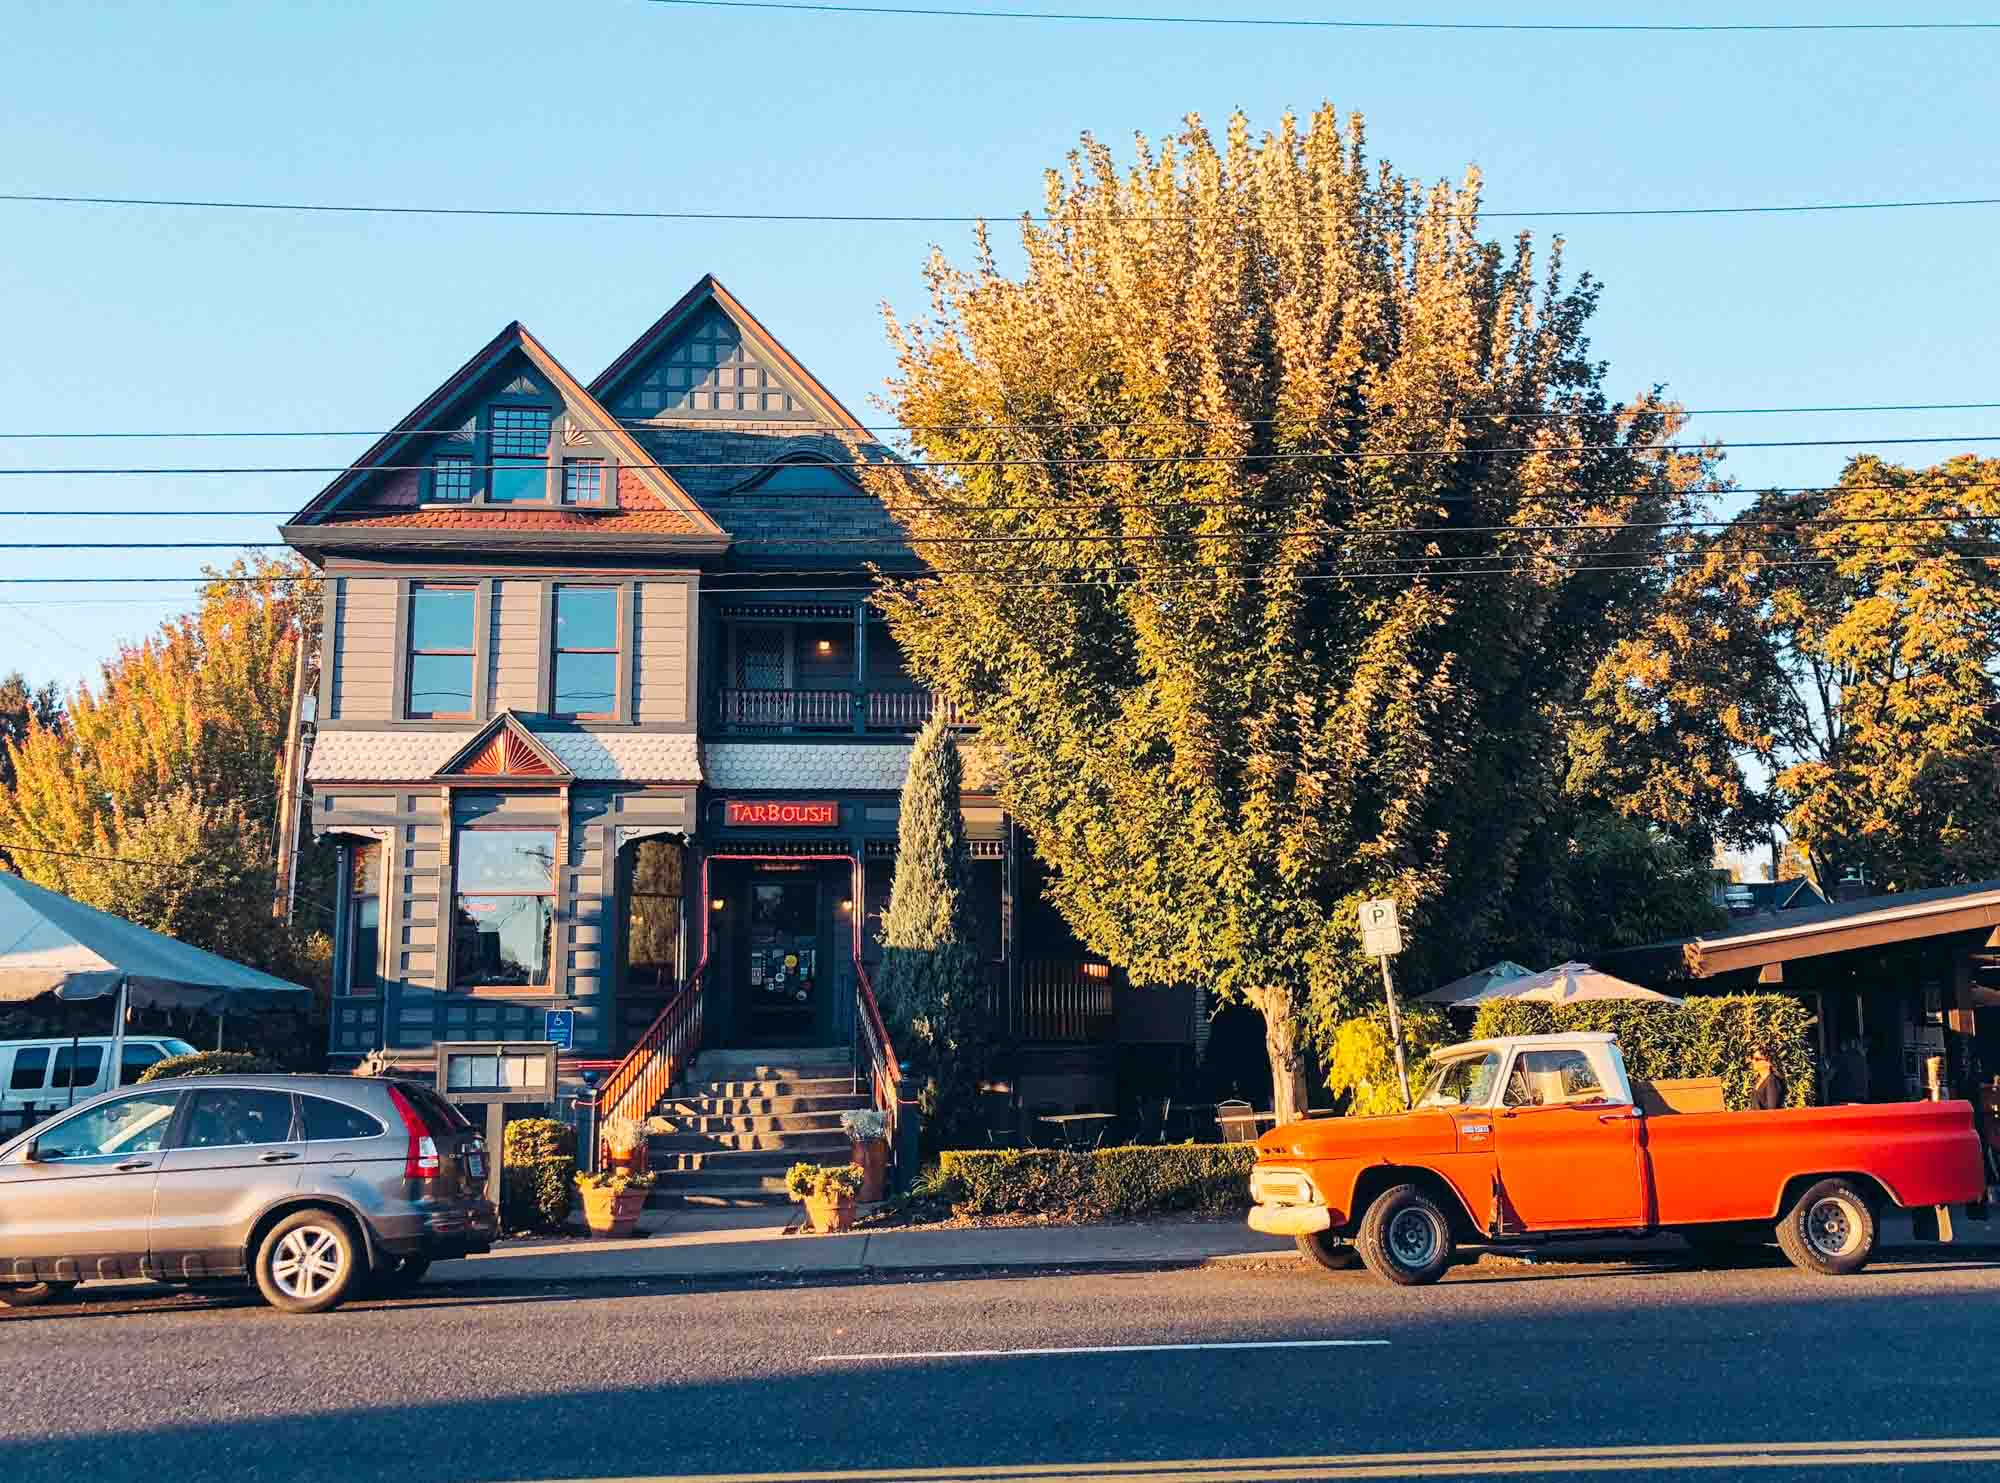 Things to do in Portland - Explore Hawthorne